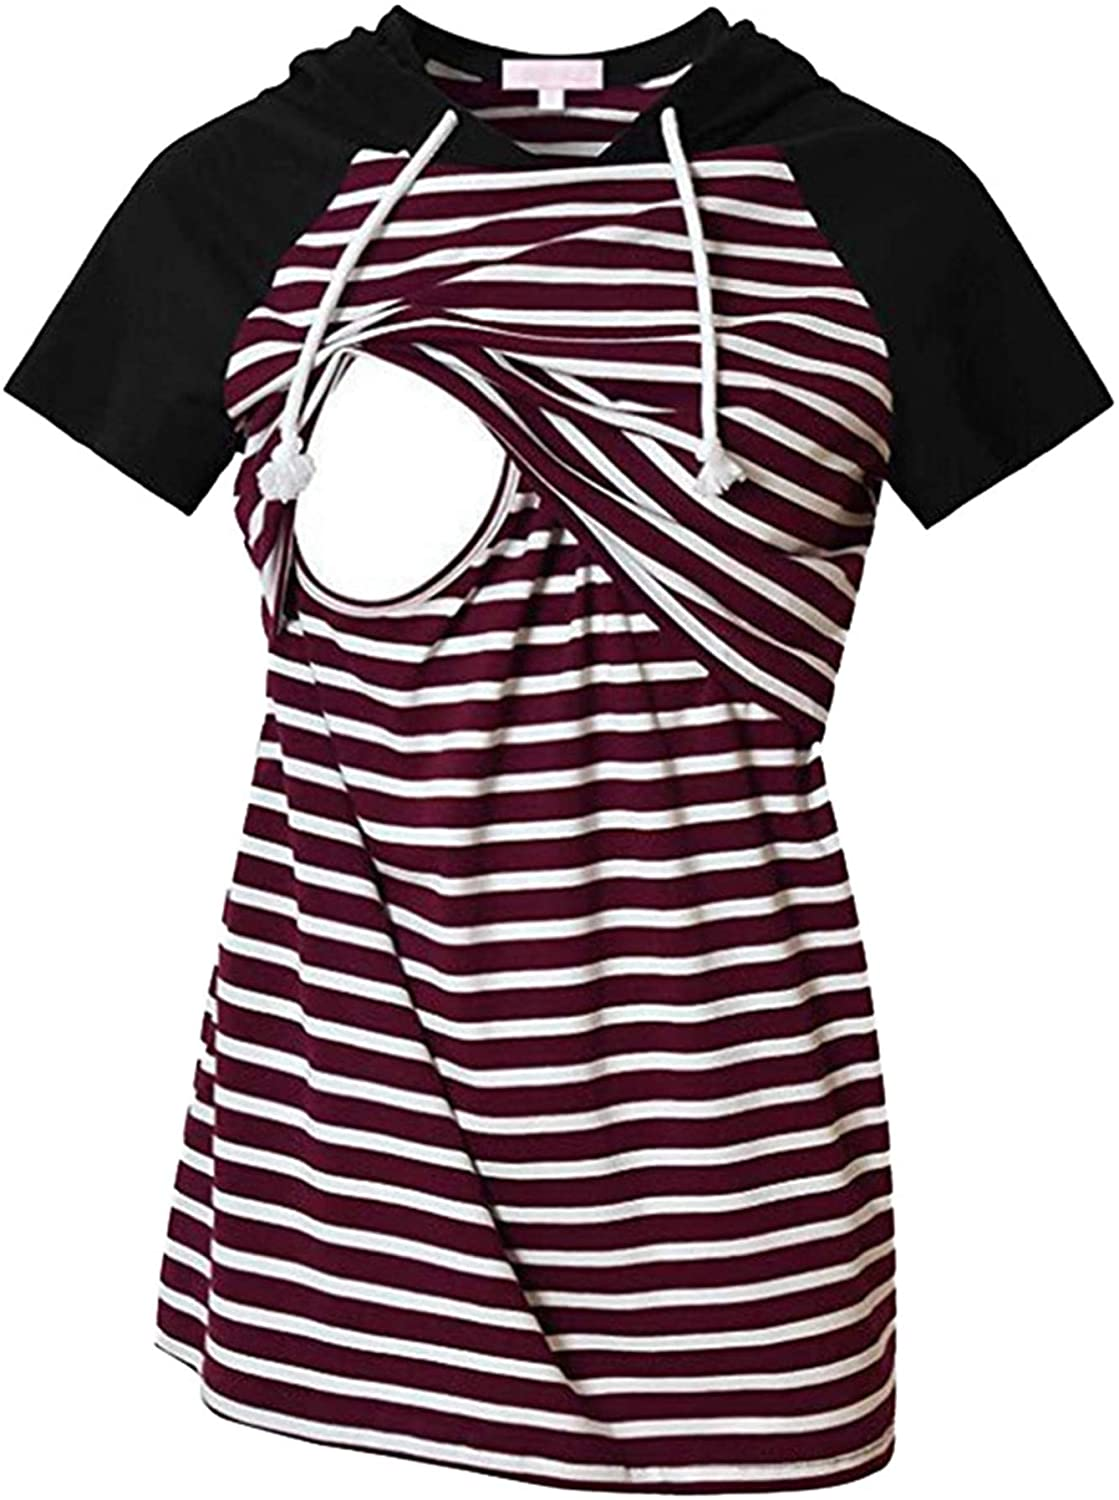 Soluo Women's Maternity Striped Short Sleeve Breastfeeding Nursing Hoodie Pullover Tops Clothes Shirt